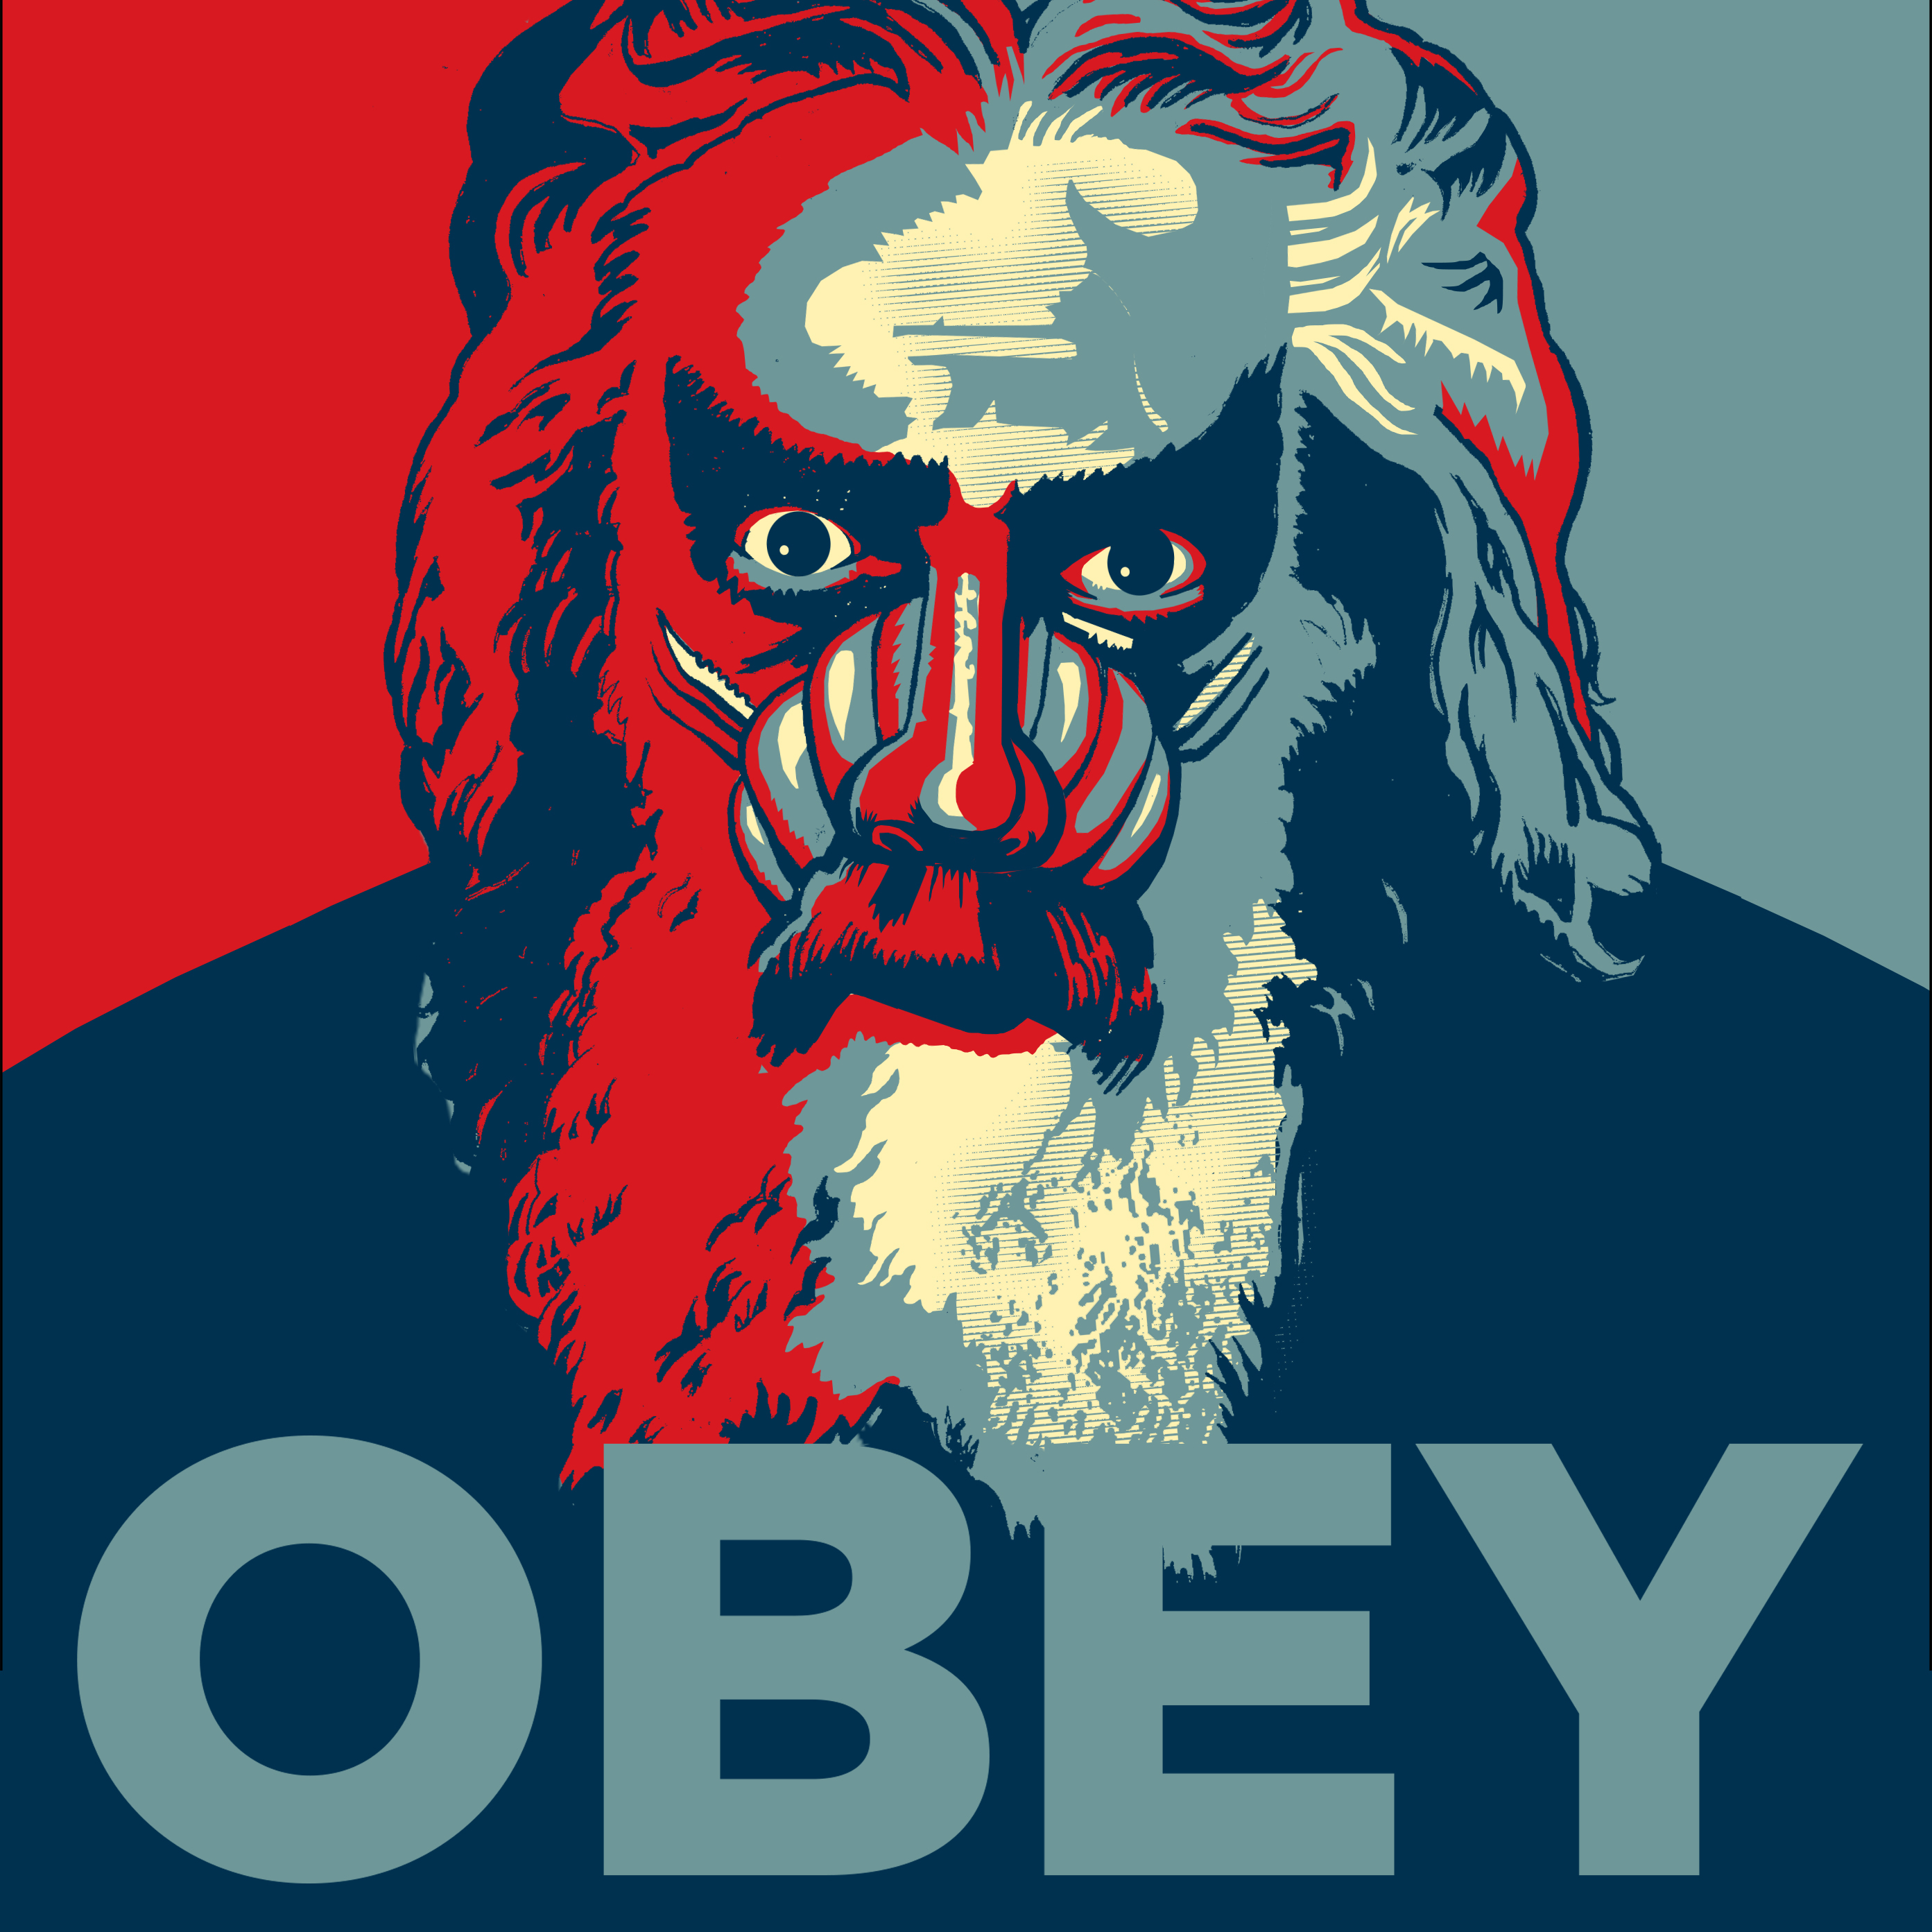 Obey The Mandrill